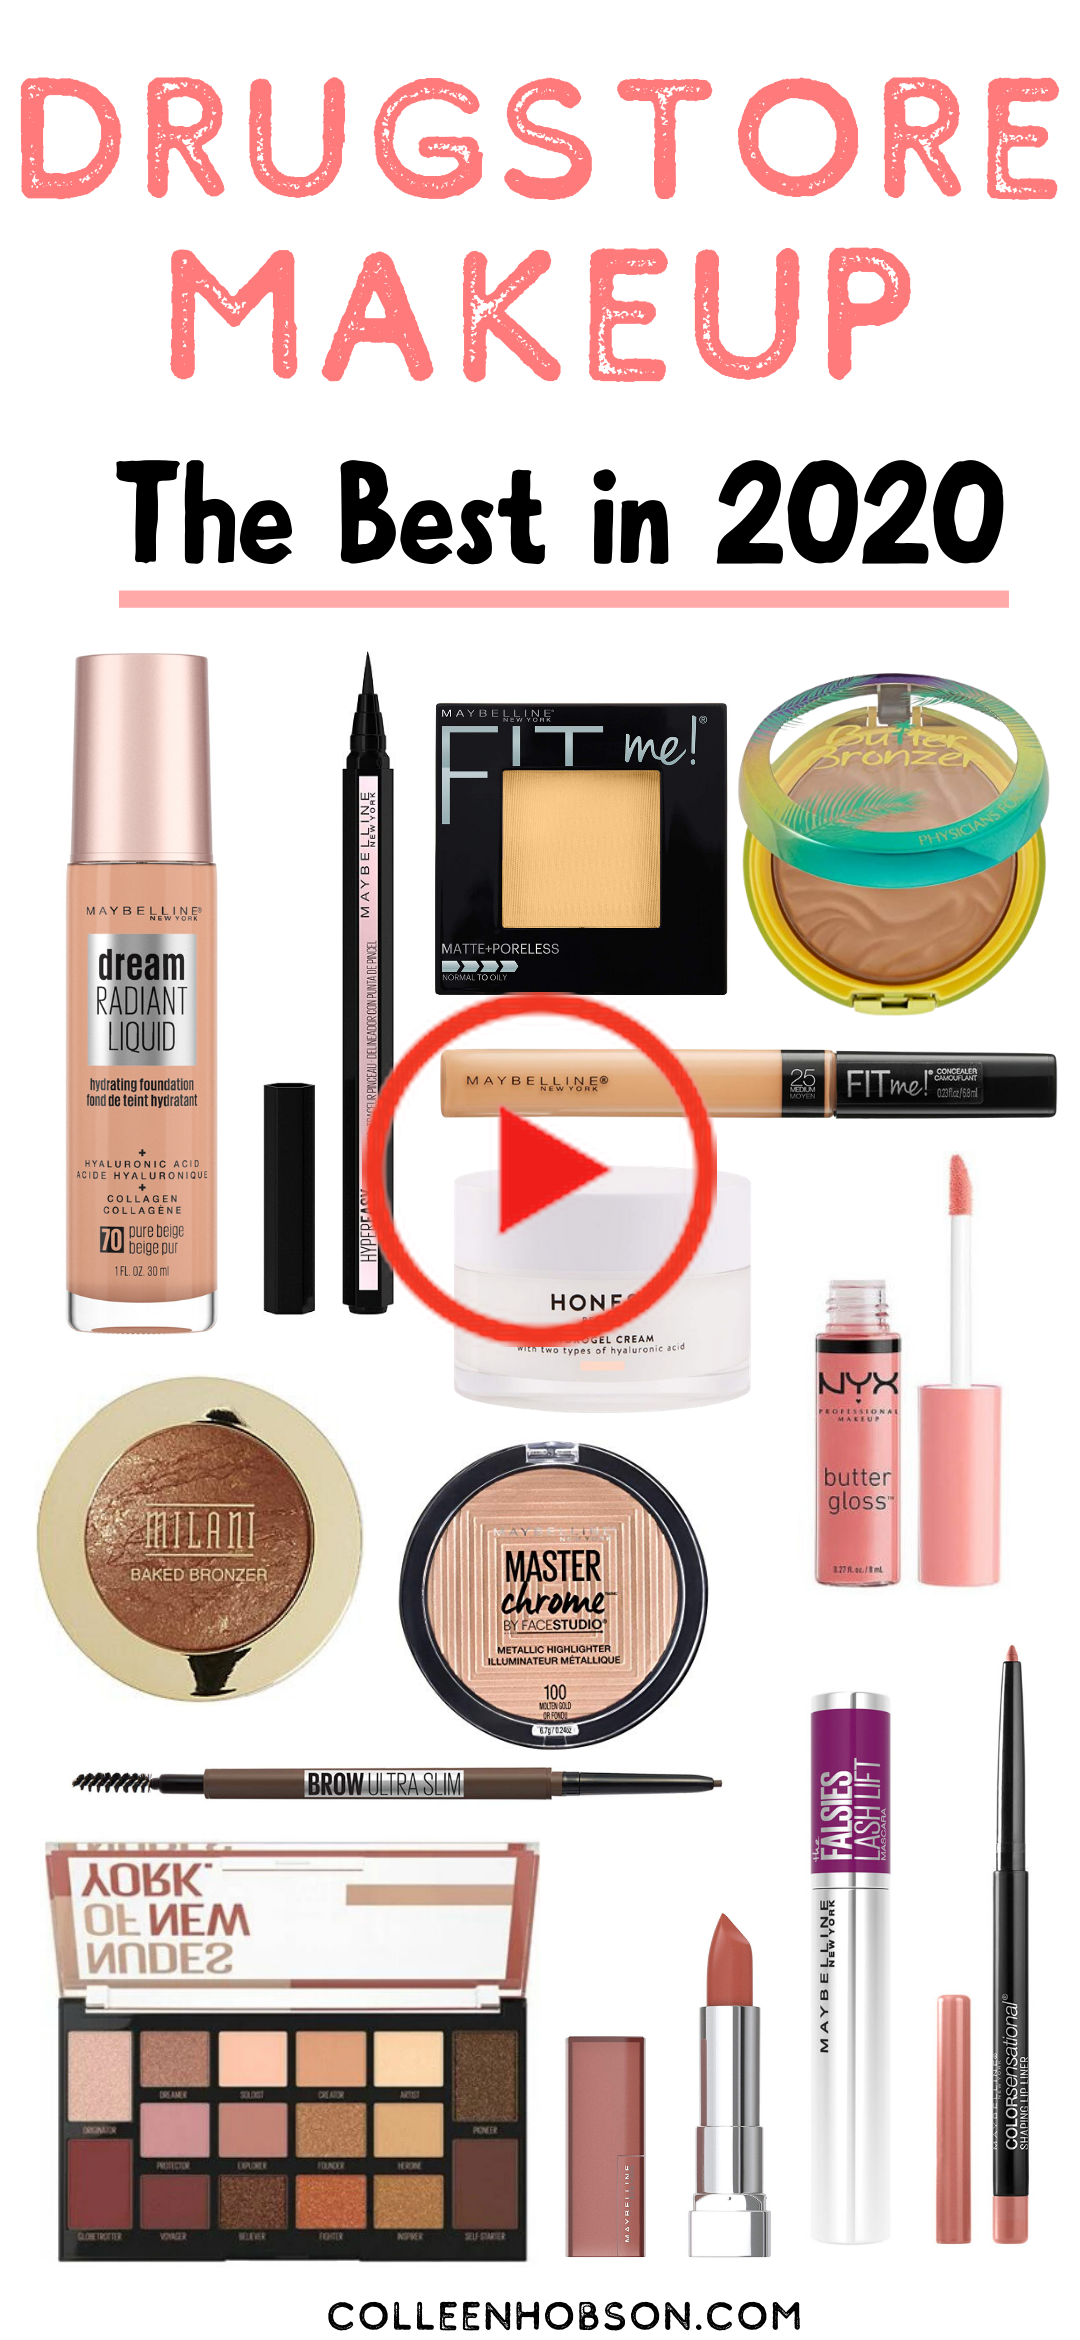 The Best Drugstore Makeup Products In 2020 in 2020 Best